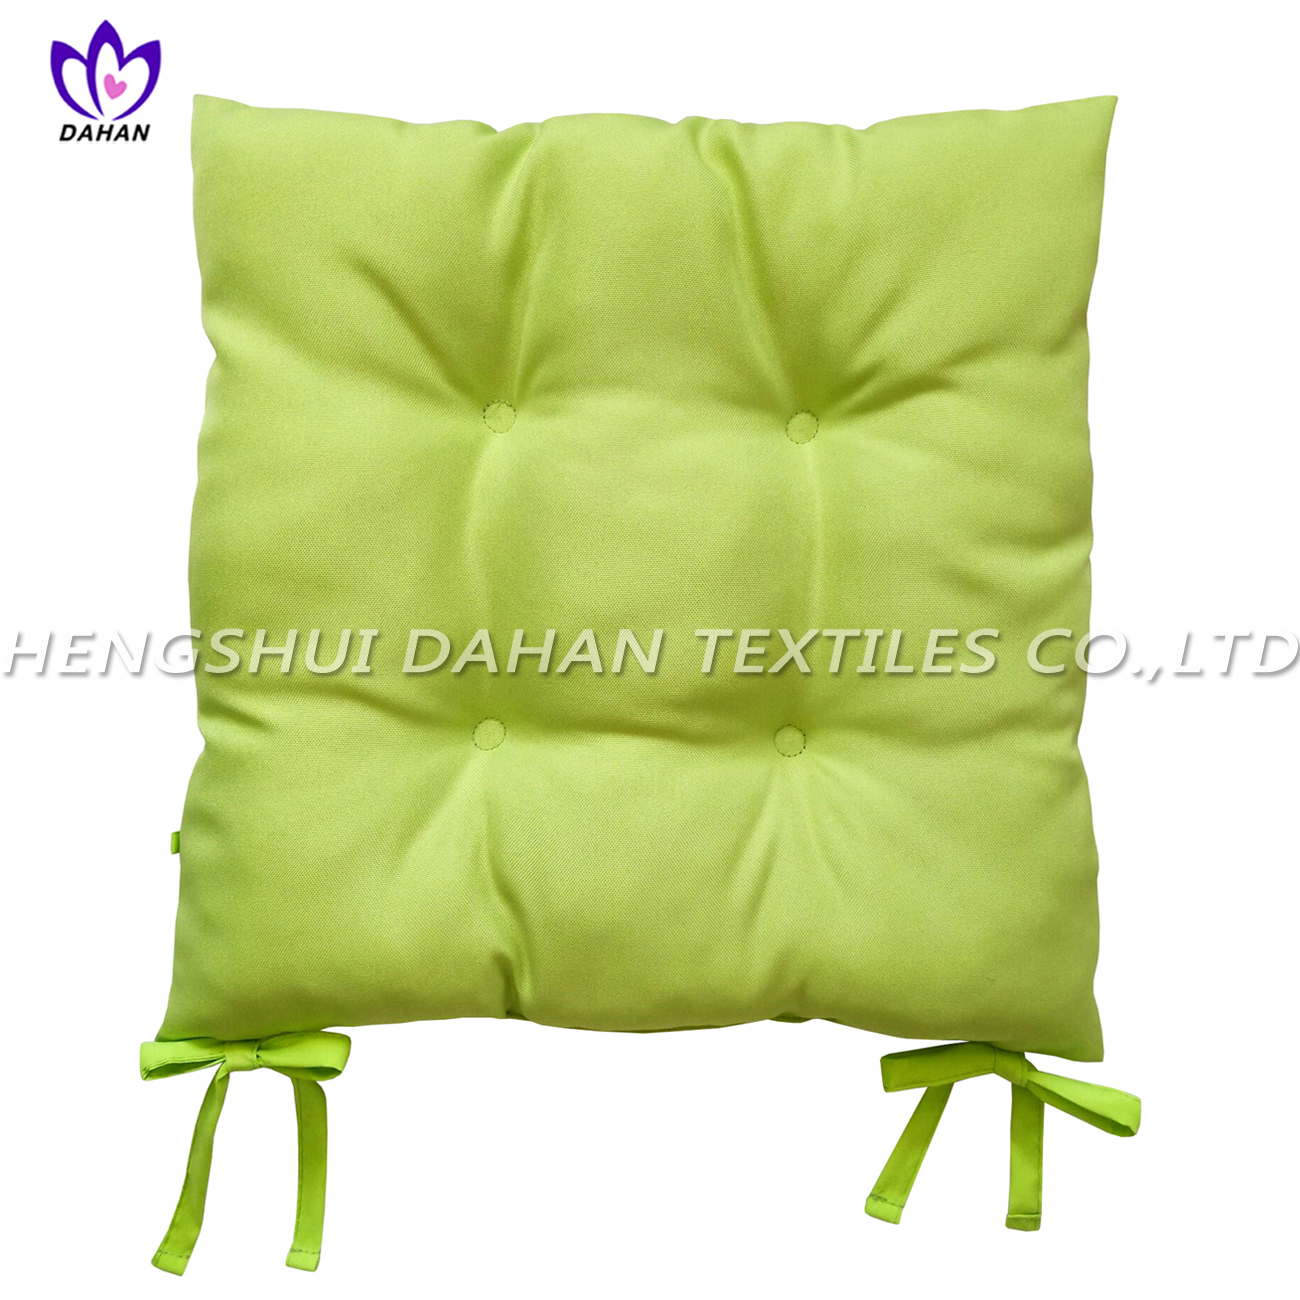 BC11 100%polyester plain colour oxford cloth chair cushion.